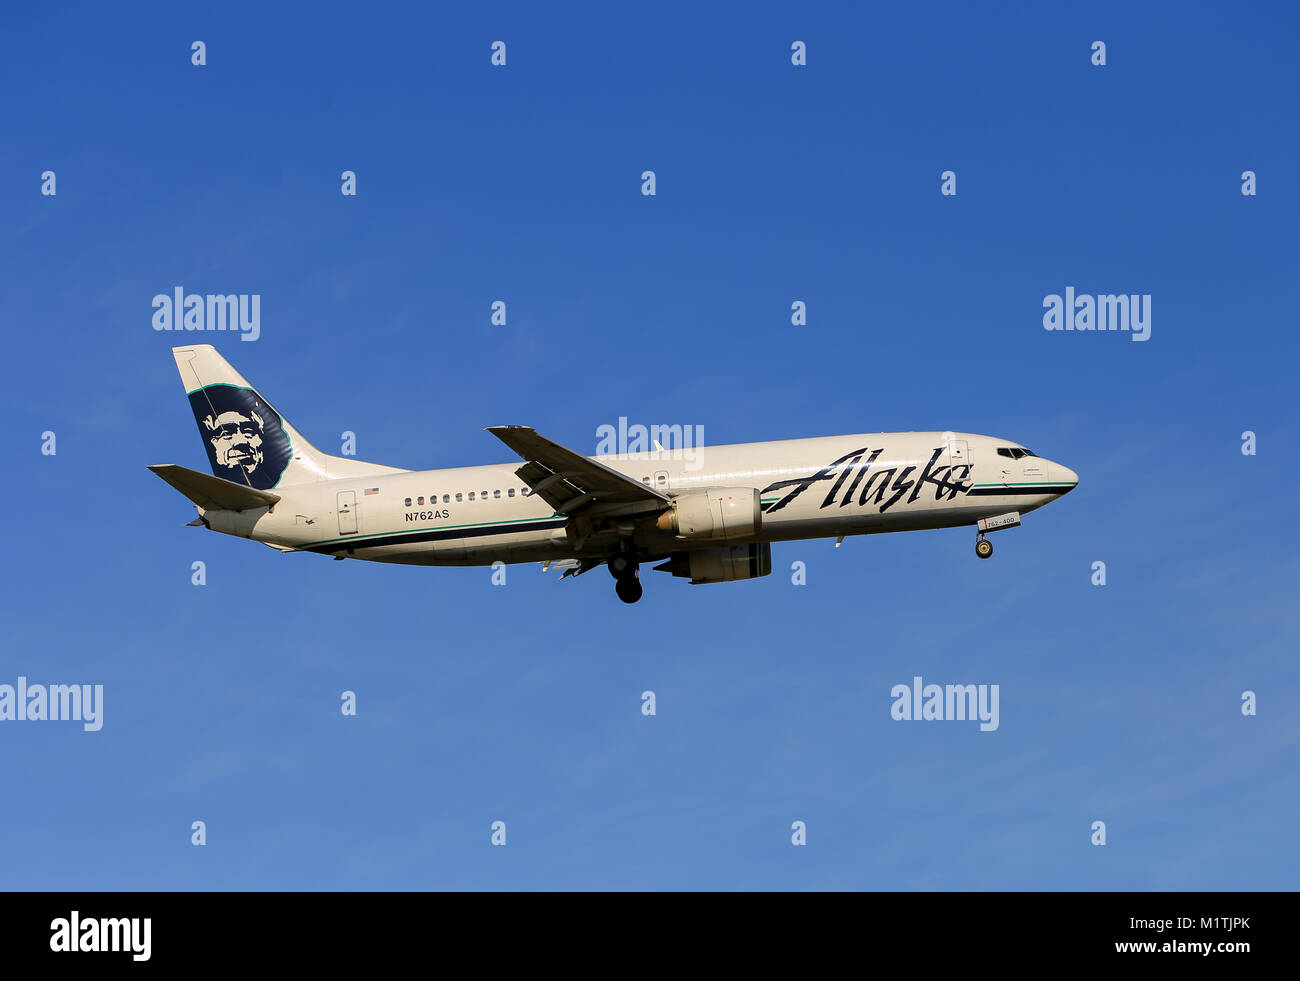 Alaska airlines stock photos alaska airlines stock images alamy anchorage usa may 17 2017 an aircraft boeing 737 of alaska airlines buycottarizona Choice Image